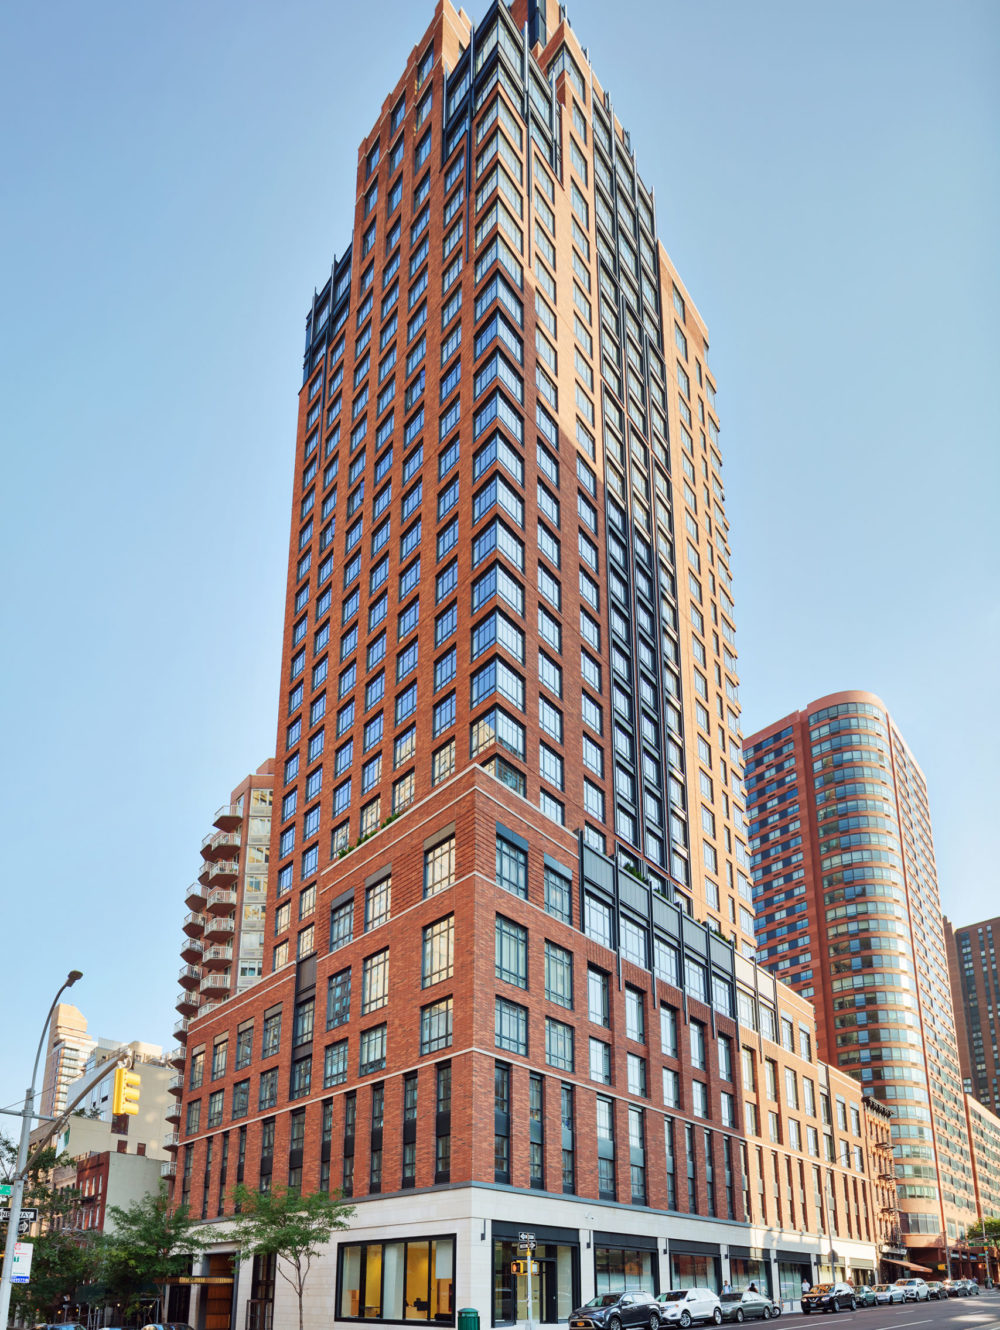 Exterior view of The Kent condominiums in New York. Street level view looking up at the brick high rise during daytime.